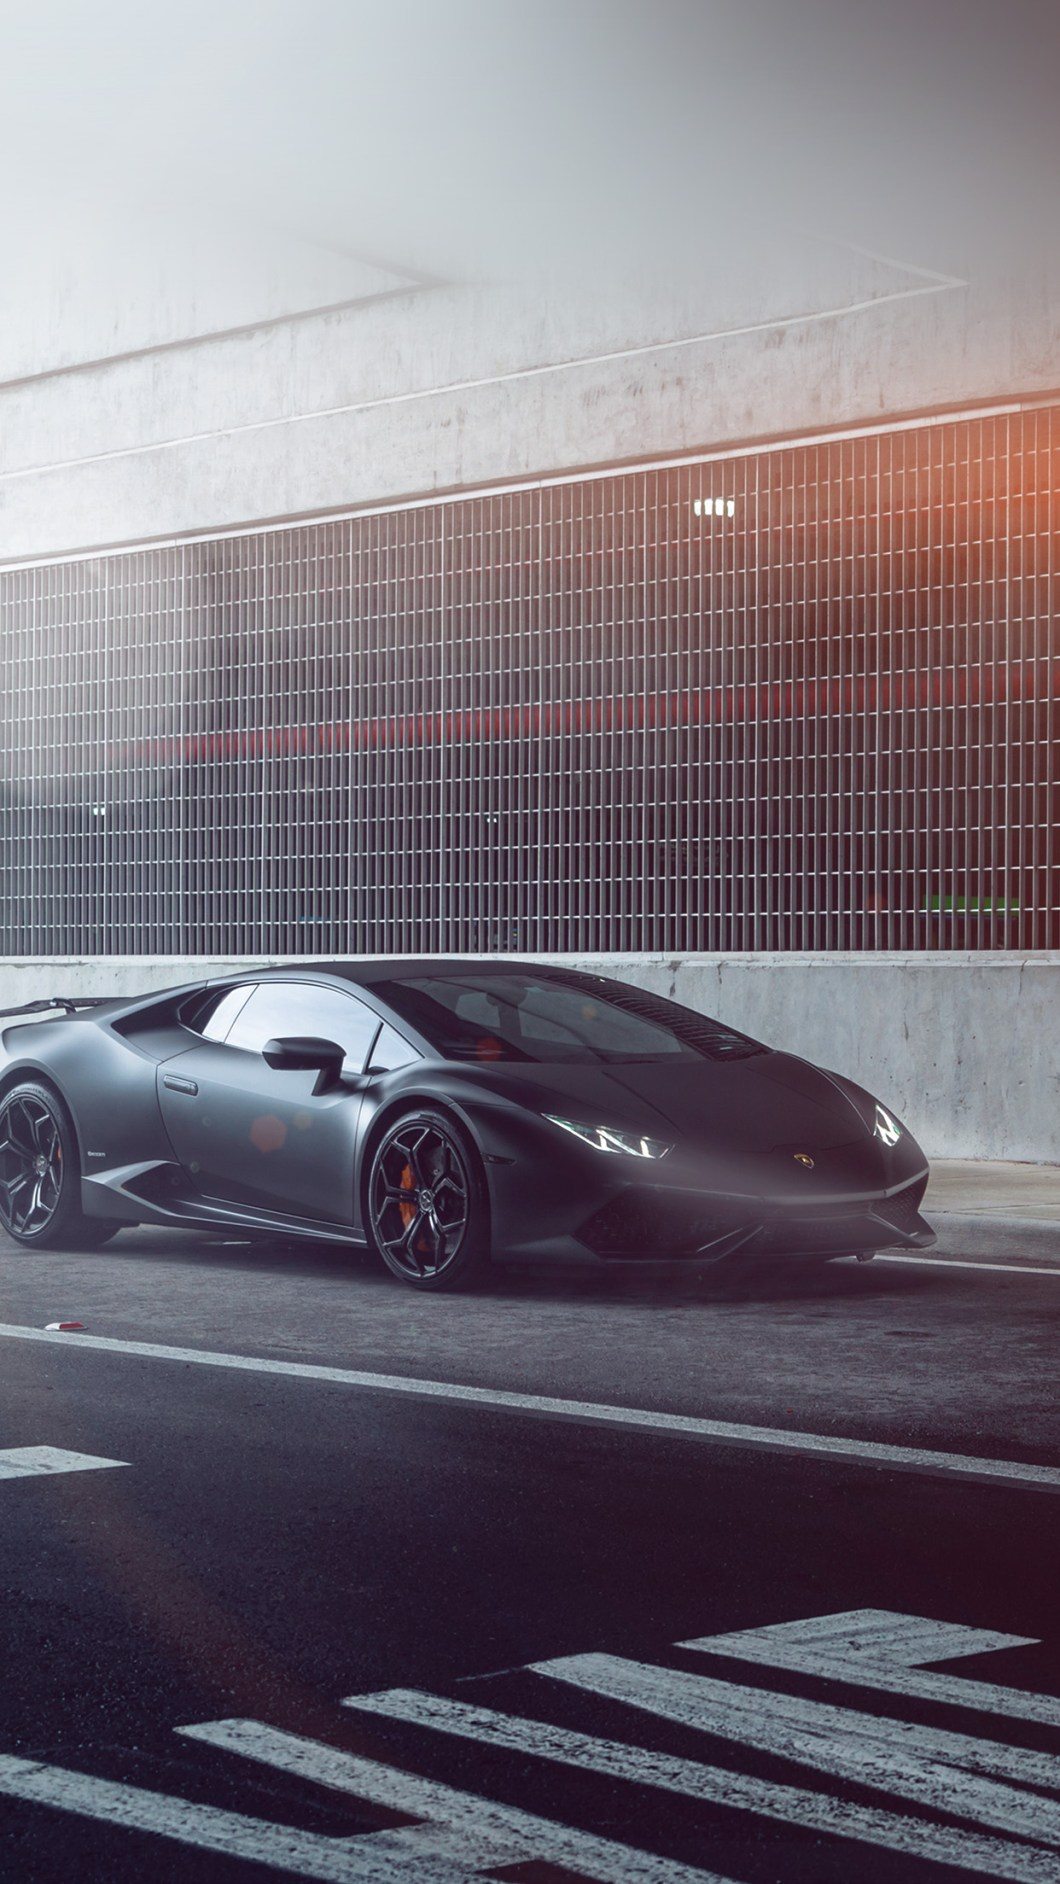 Lamborghini Hd Wallpapers For Iphone 7 Plus The Galleries Of Hd